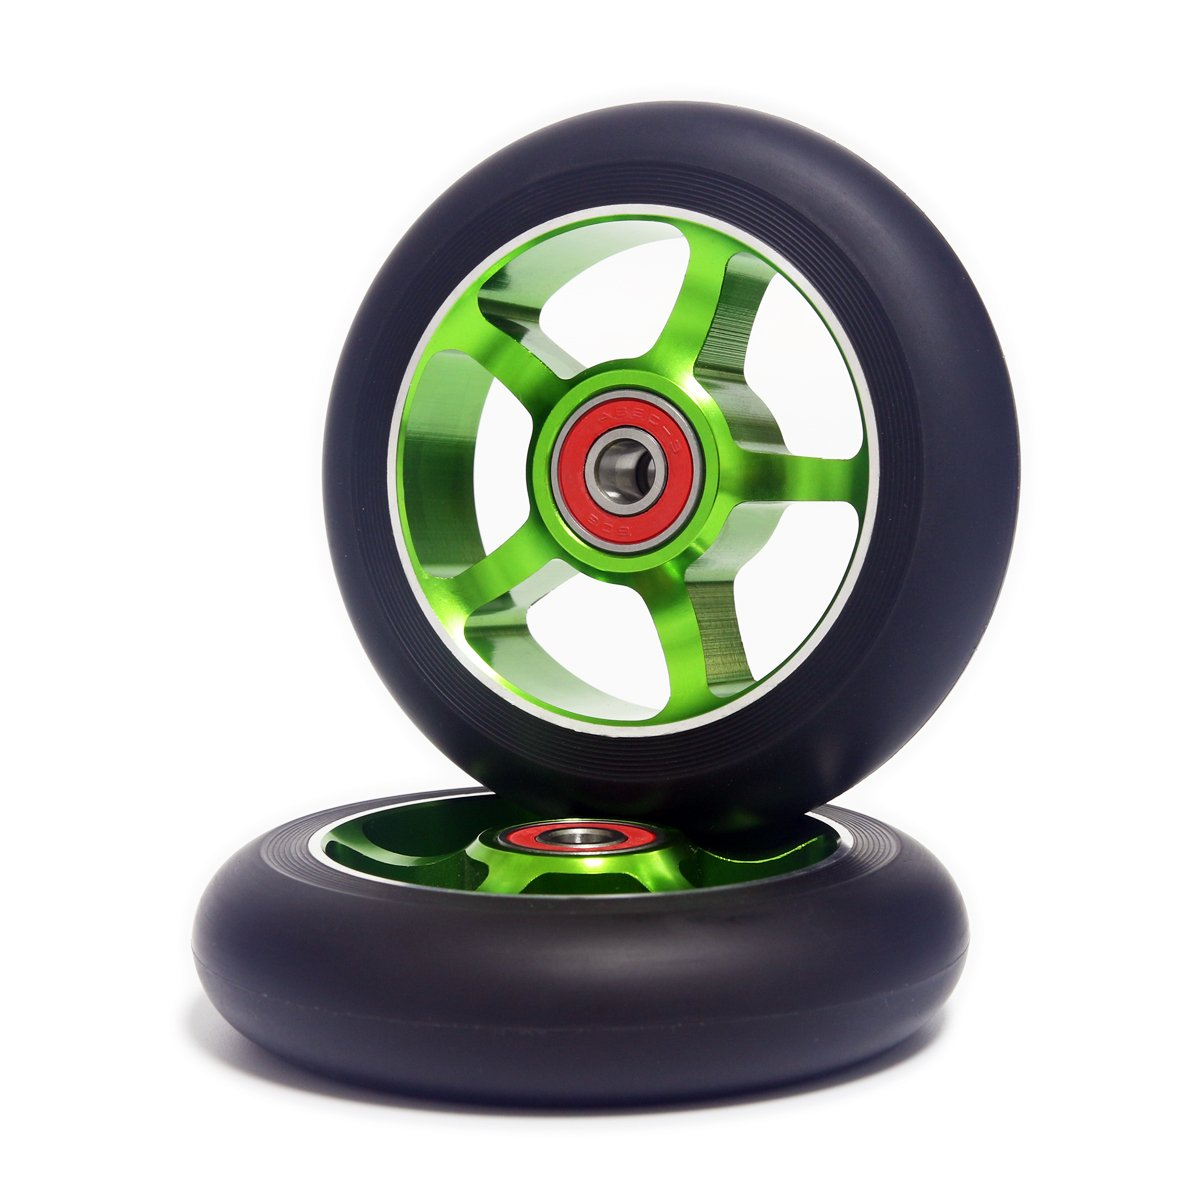 Z-FIRST 2Pcs 100 mm Pro Stunt Scooter Wheels with ABEC 9 Bearings for MGP//Razor//Lucky//Envy//Vokul Pro Scooters Replacement Wheels